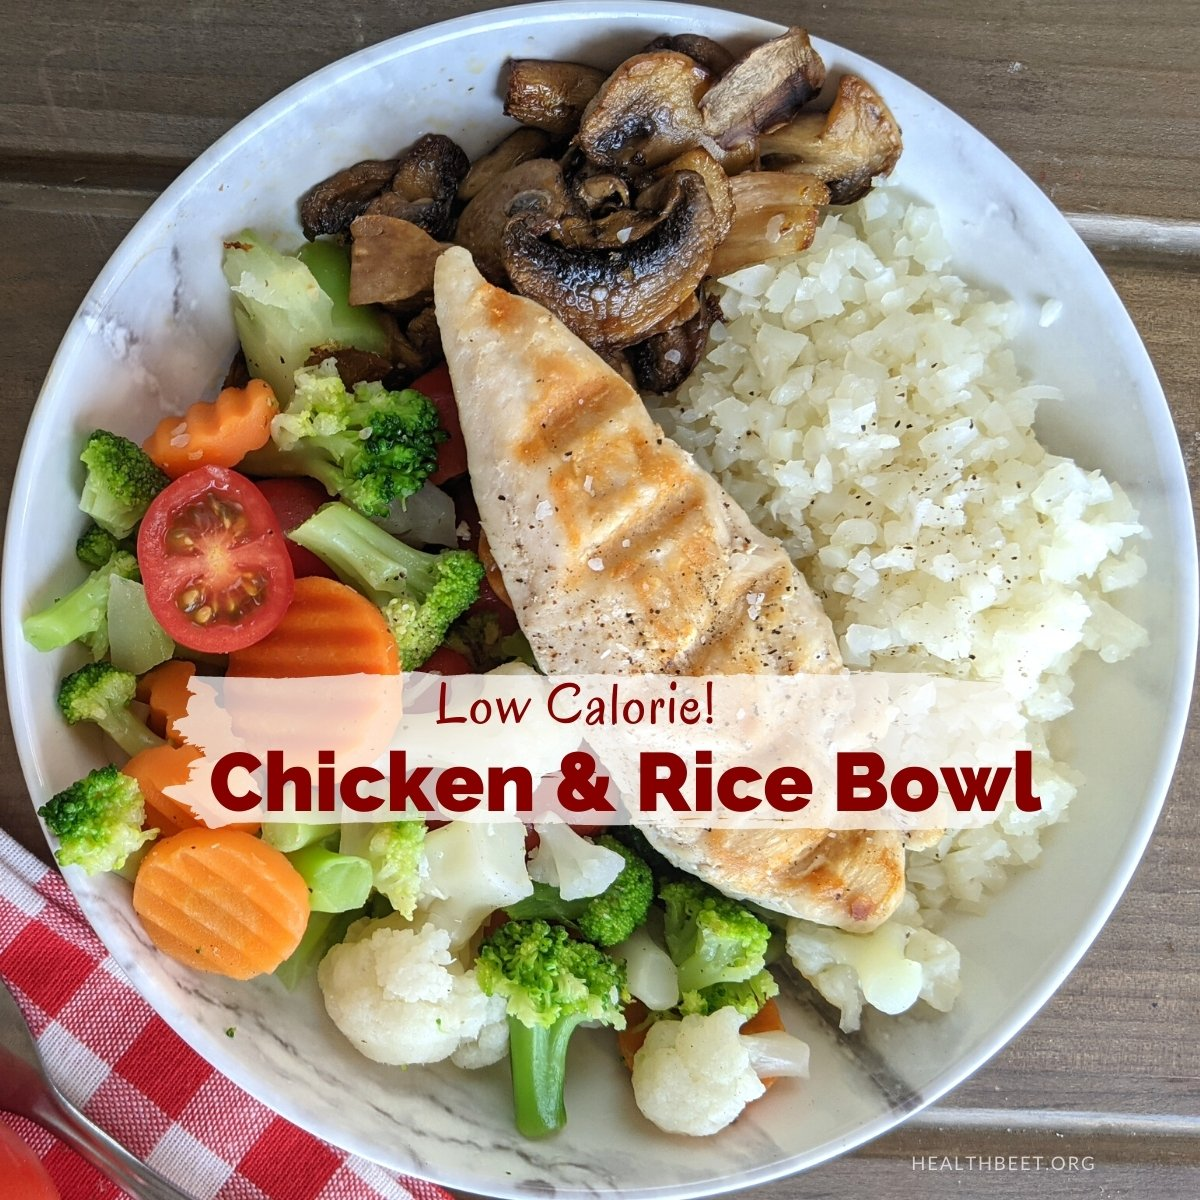 Very Low Calorie Chicken and Rice Bowl Dinner Recipe - Health Beet